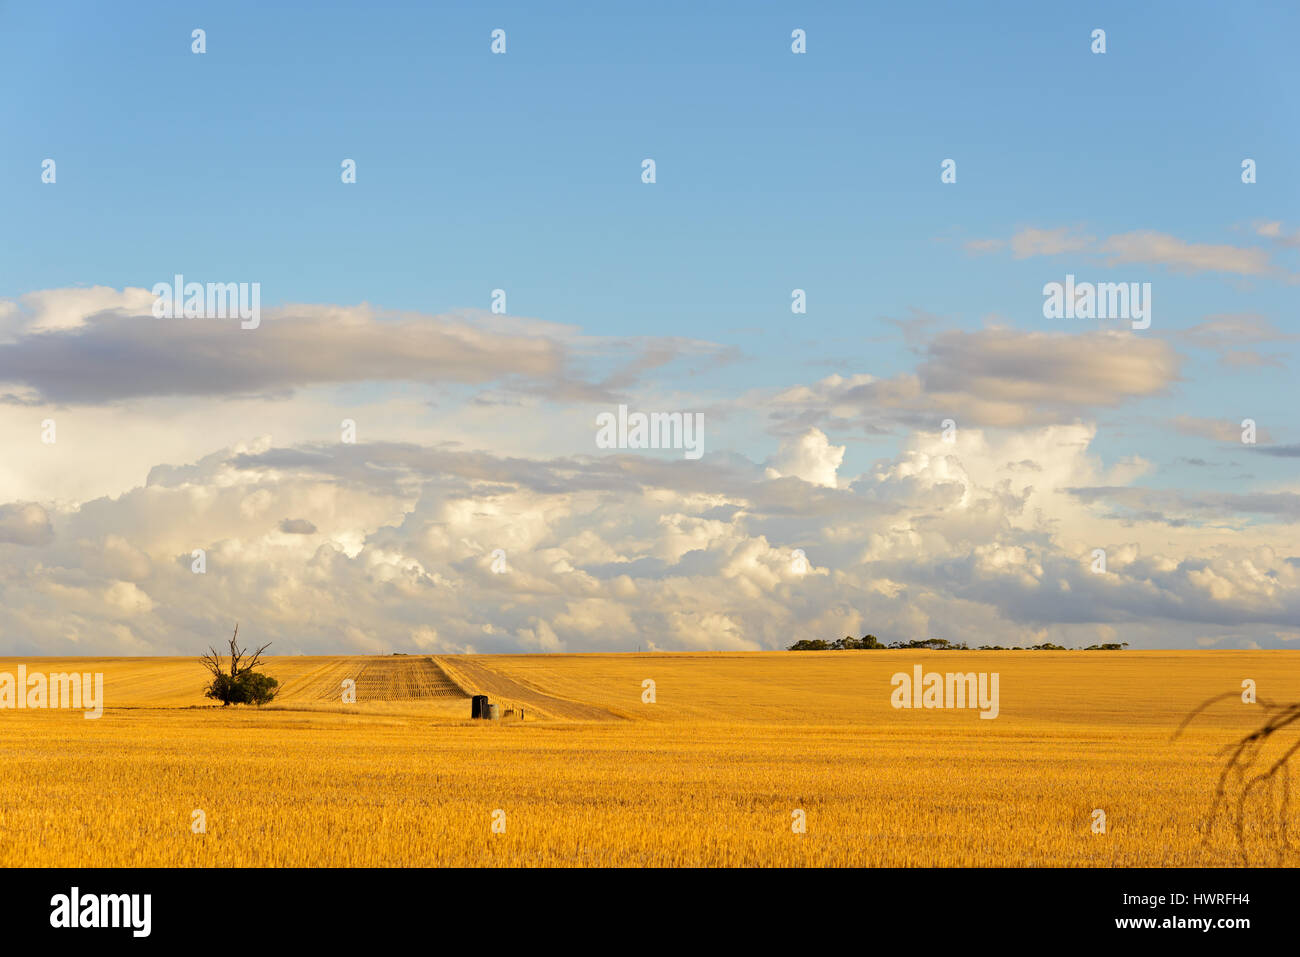 Wheatbelt of Western Australia, Harvested fields, Australia Stock Photo